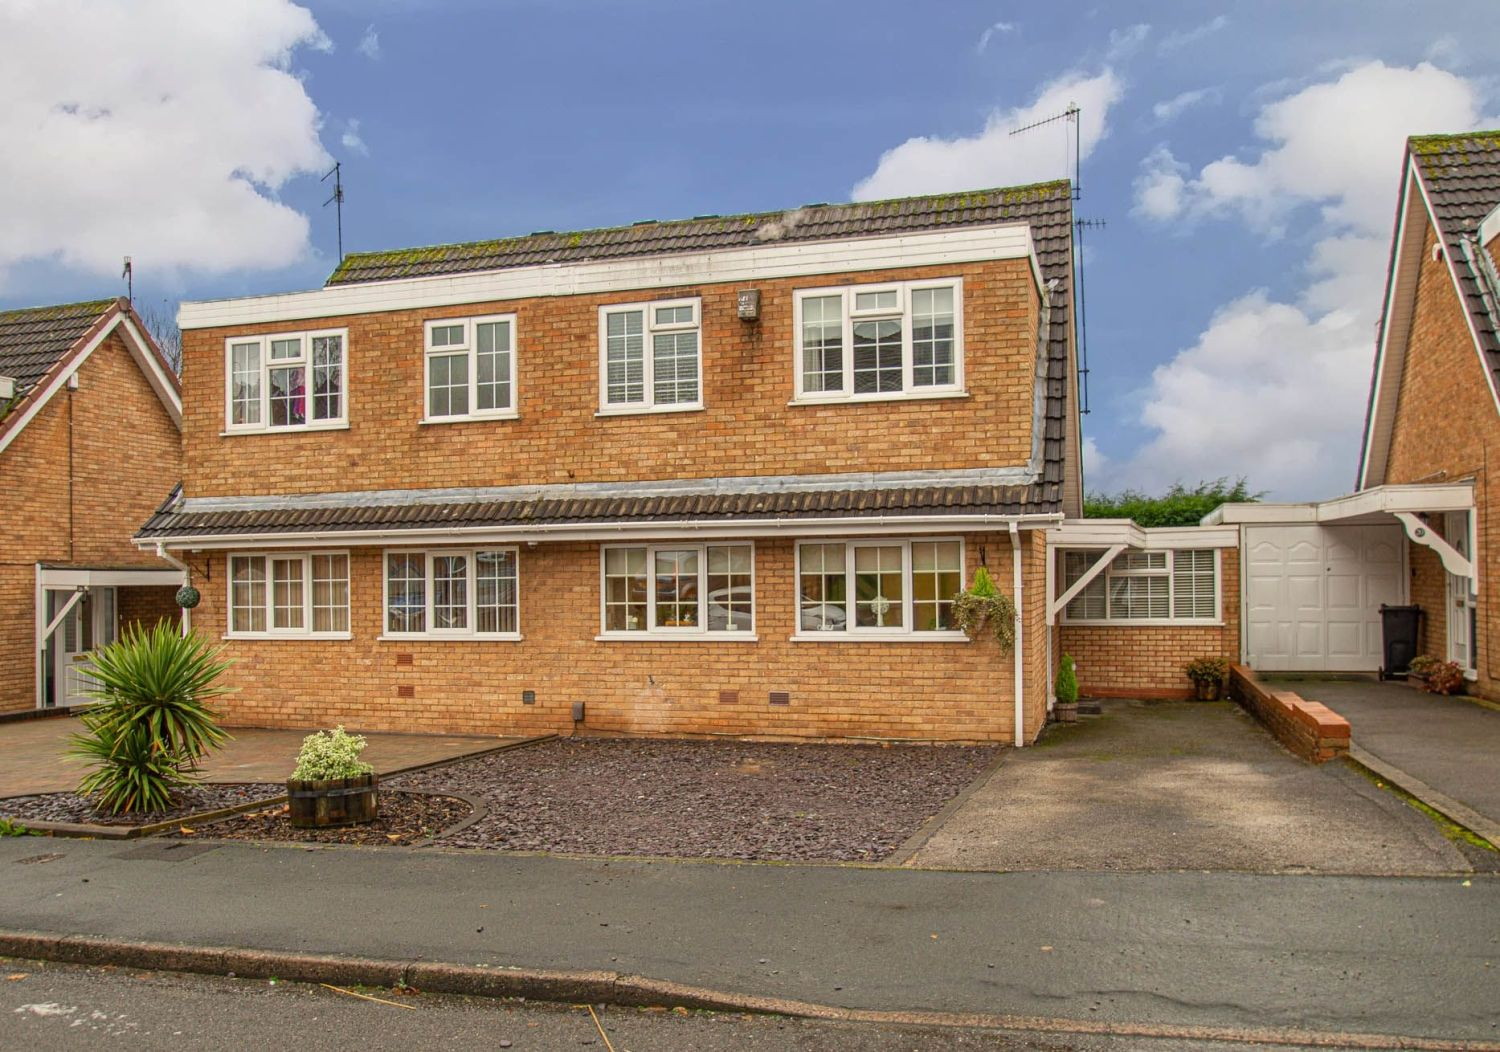 2 bed semi-detached for sale in Woburn Drive, Halesowen - Property Image 1